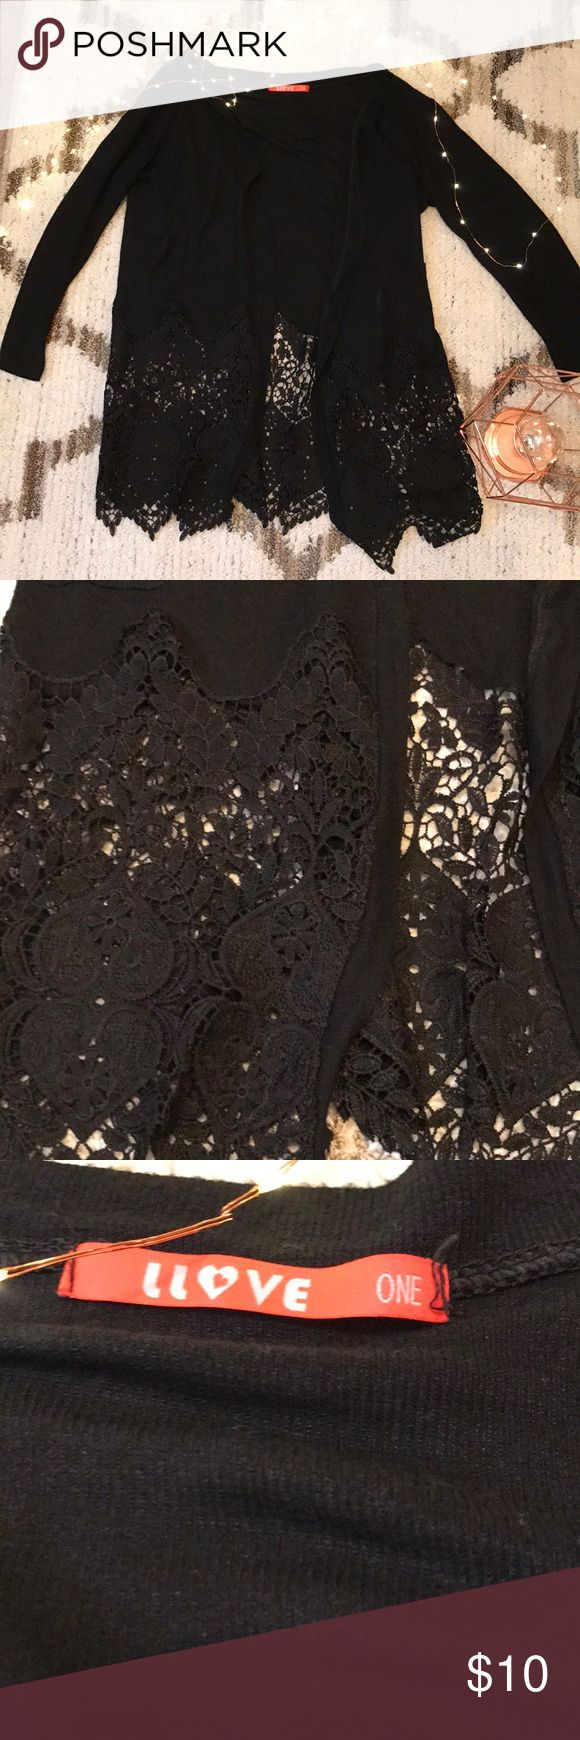 Black Lace Cardigan Black Light weight Cardigan with beautiful lace detail on the bottom  There are two small pockets near the bottom Long sleeve  I did not find a size listed.  It looks like it may say one size but I'm a small and it fit me great! Only worn once or twice! Fabulous condition! Bought from boutique LLove Sweaters Cardigans